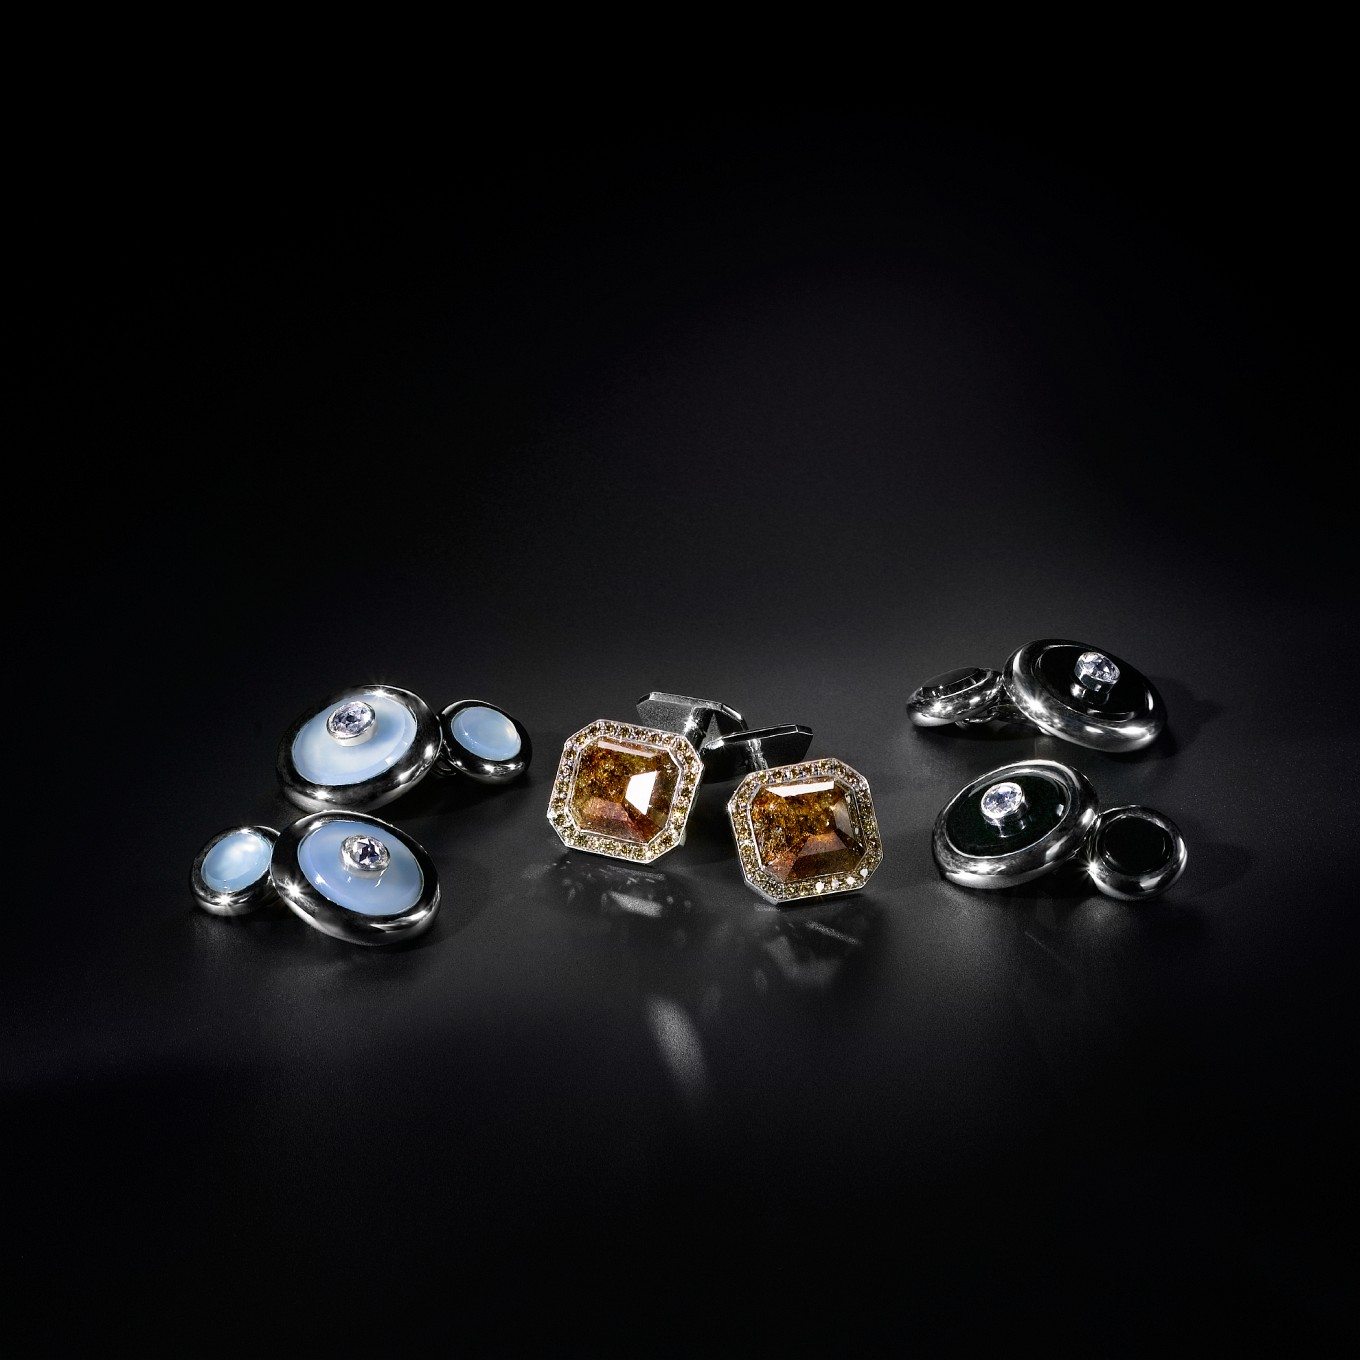 'MEN'S DRESS CUFFLINKS IN WHITE GOLD FROM LEFT: CHALCEDONY & ROSE CUT DIAMONDS, CHOCOLATE DIAMOND & BROWN DIAMONDS, ONYX & ROSE CUT DIAMONDS